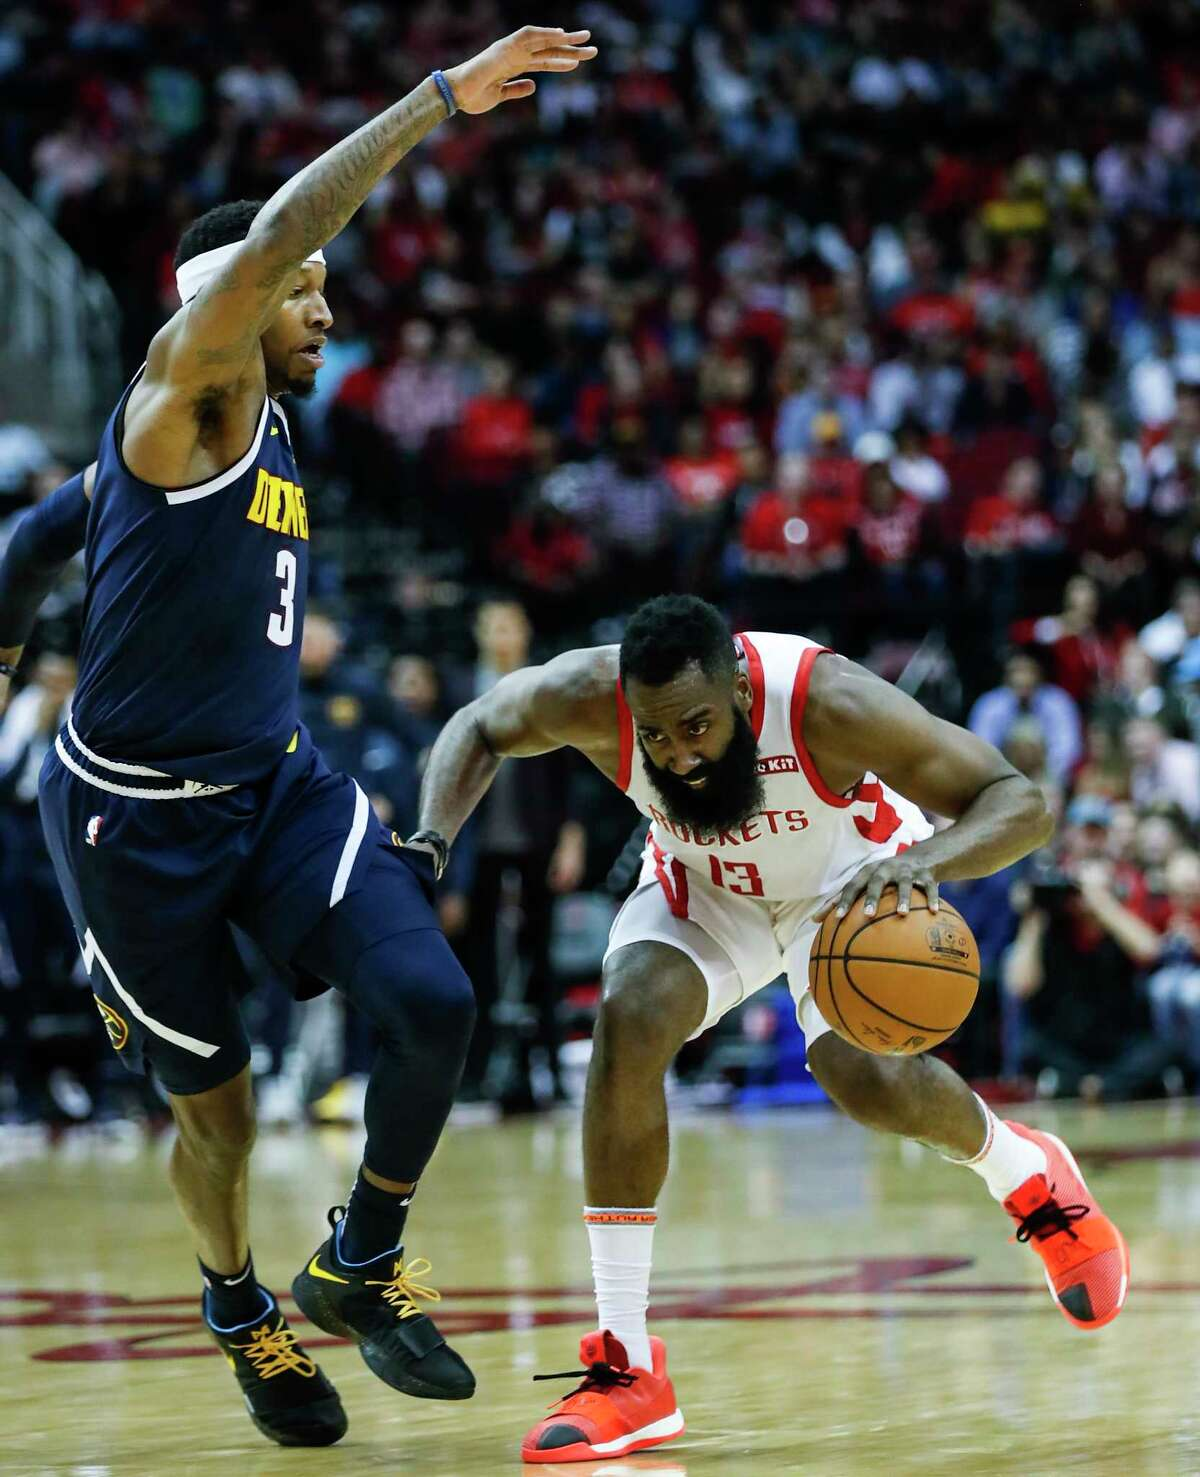 Houston Rockets guard James Harden (13) works against Denver Nuggets forward Torrey Craig (3) as he brings the ball up the court during the first half of an NBA basketball game at Toyota Center on Monday, Jan. 7, 2019, in Houston.